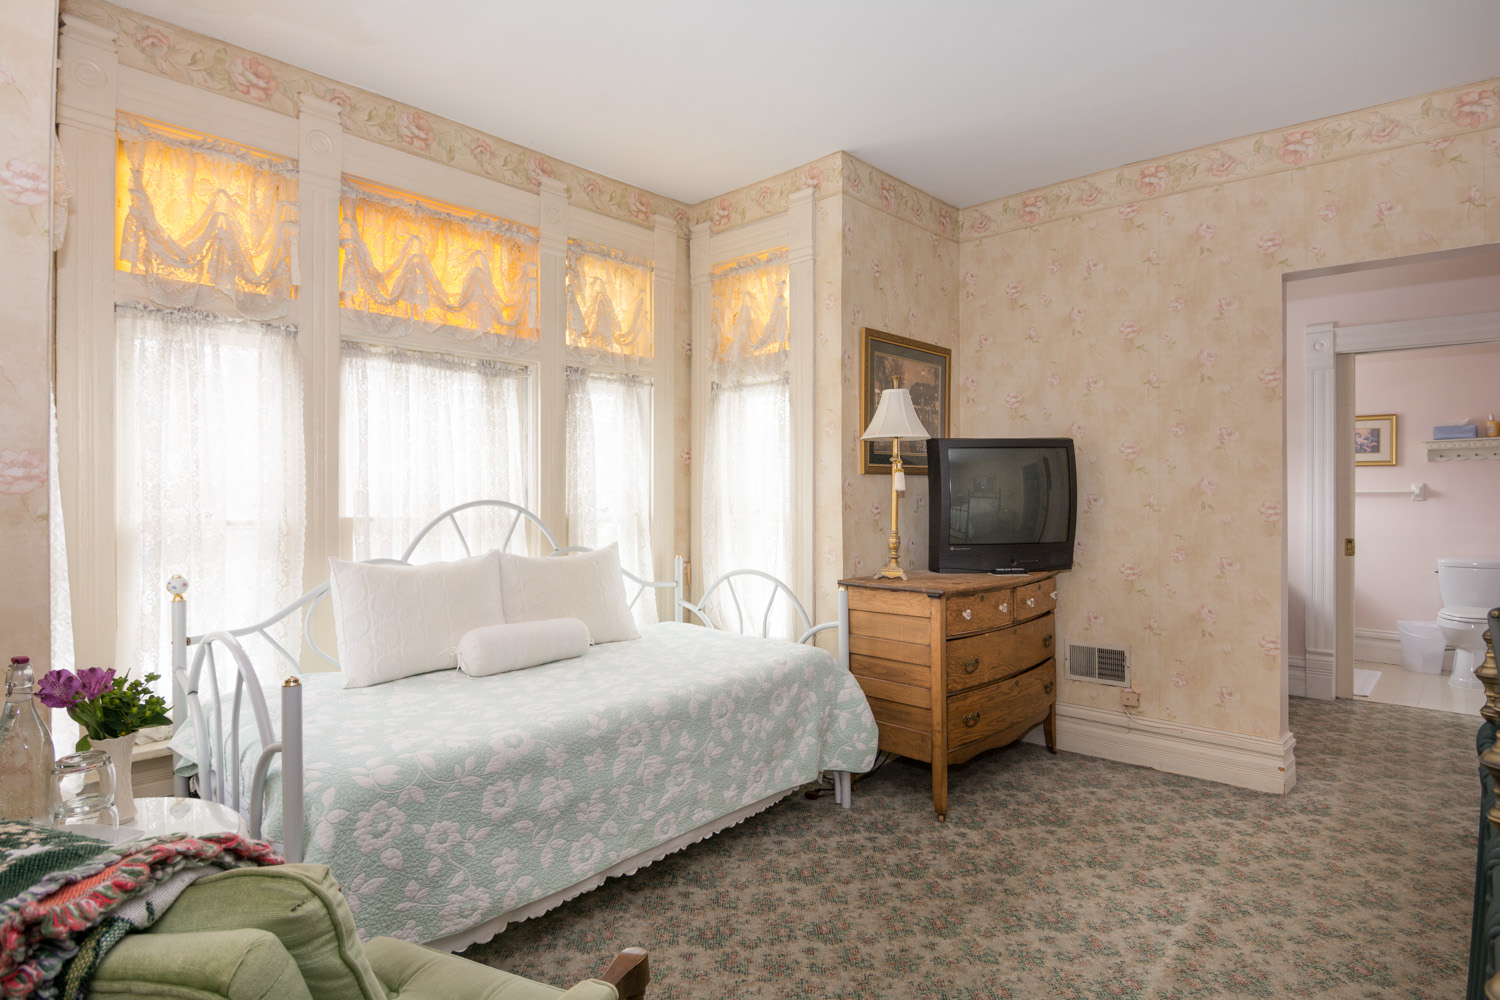 Harrison-House-Bed-and-Breakfast-Columbus-Ohio-Room-1-4